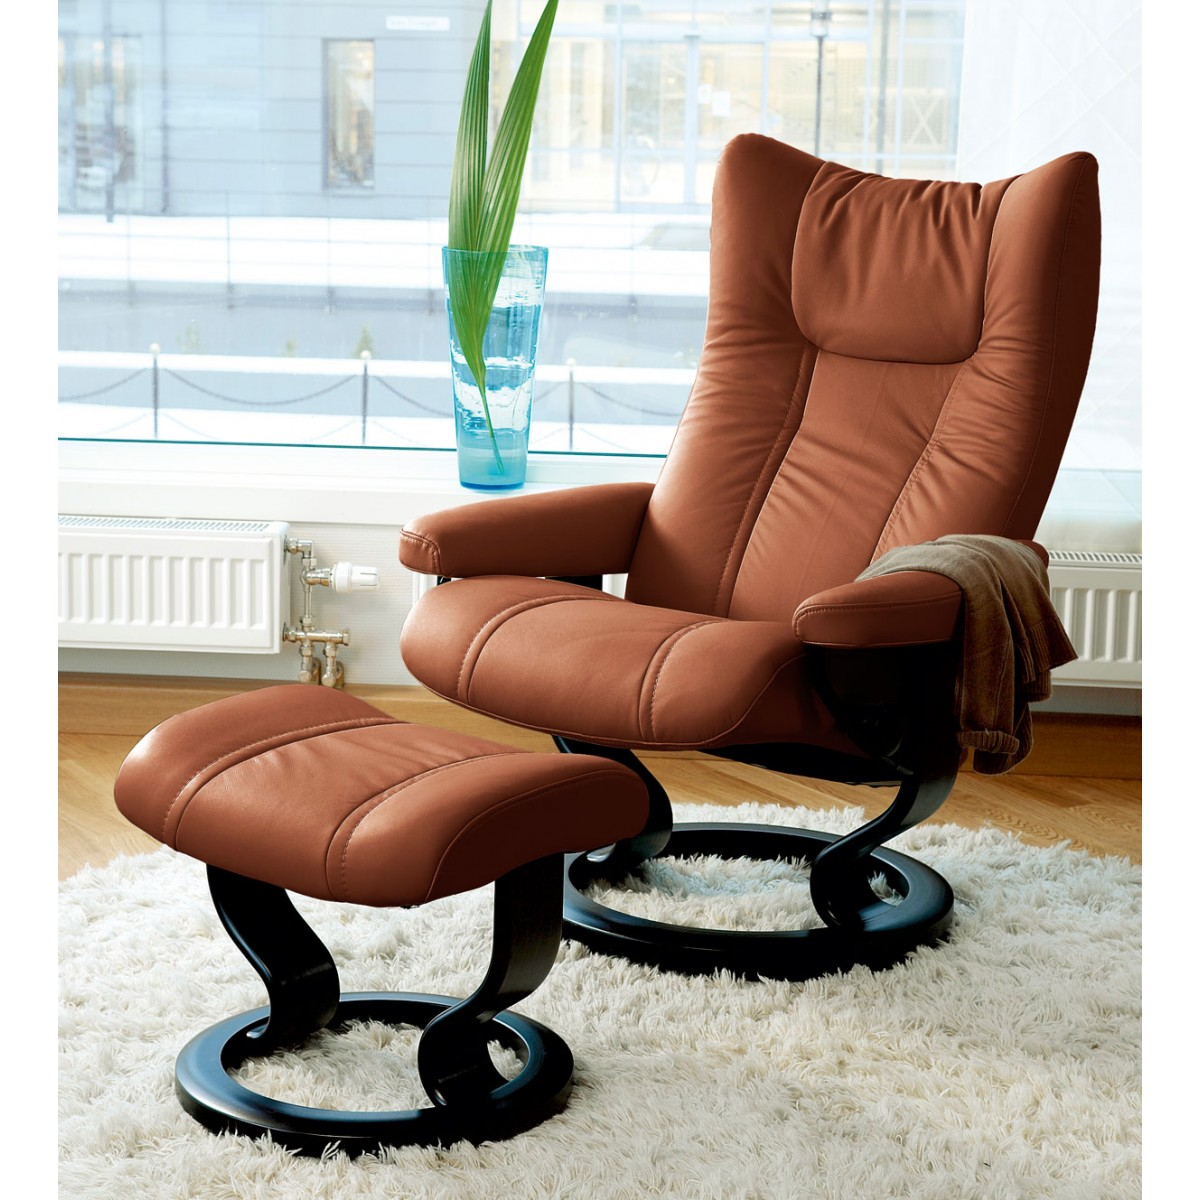 Stressless-world.com Stressless Wing Medium Recliner Ottoman